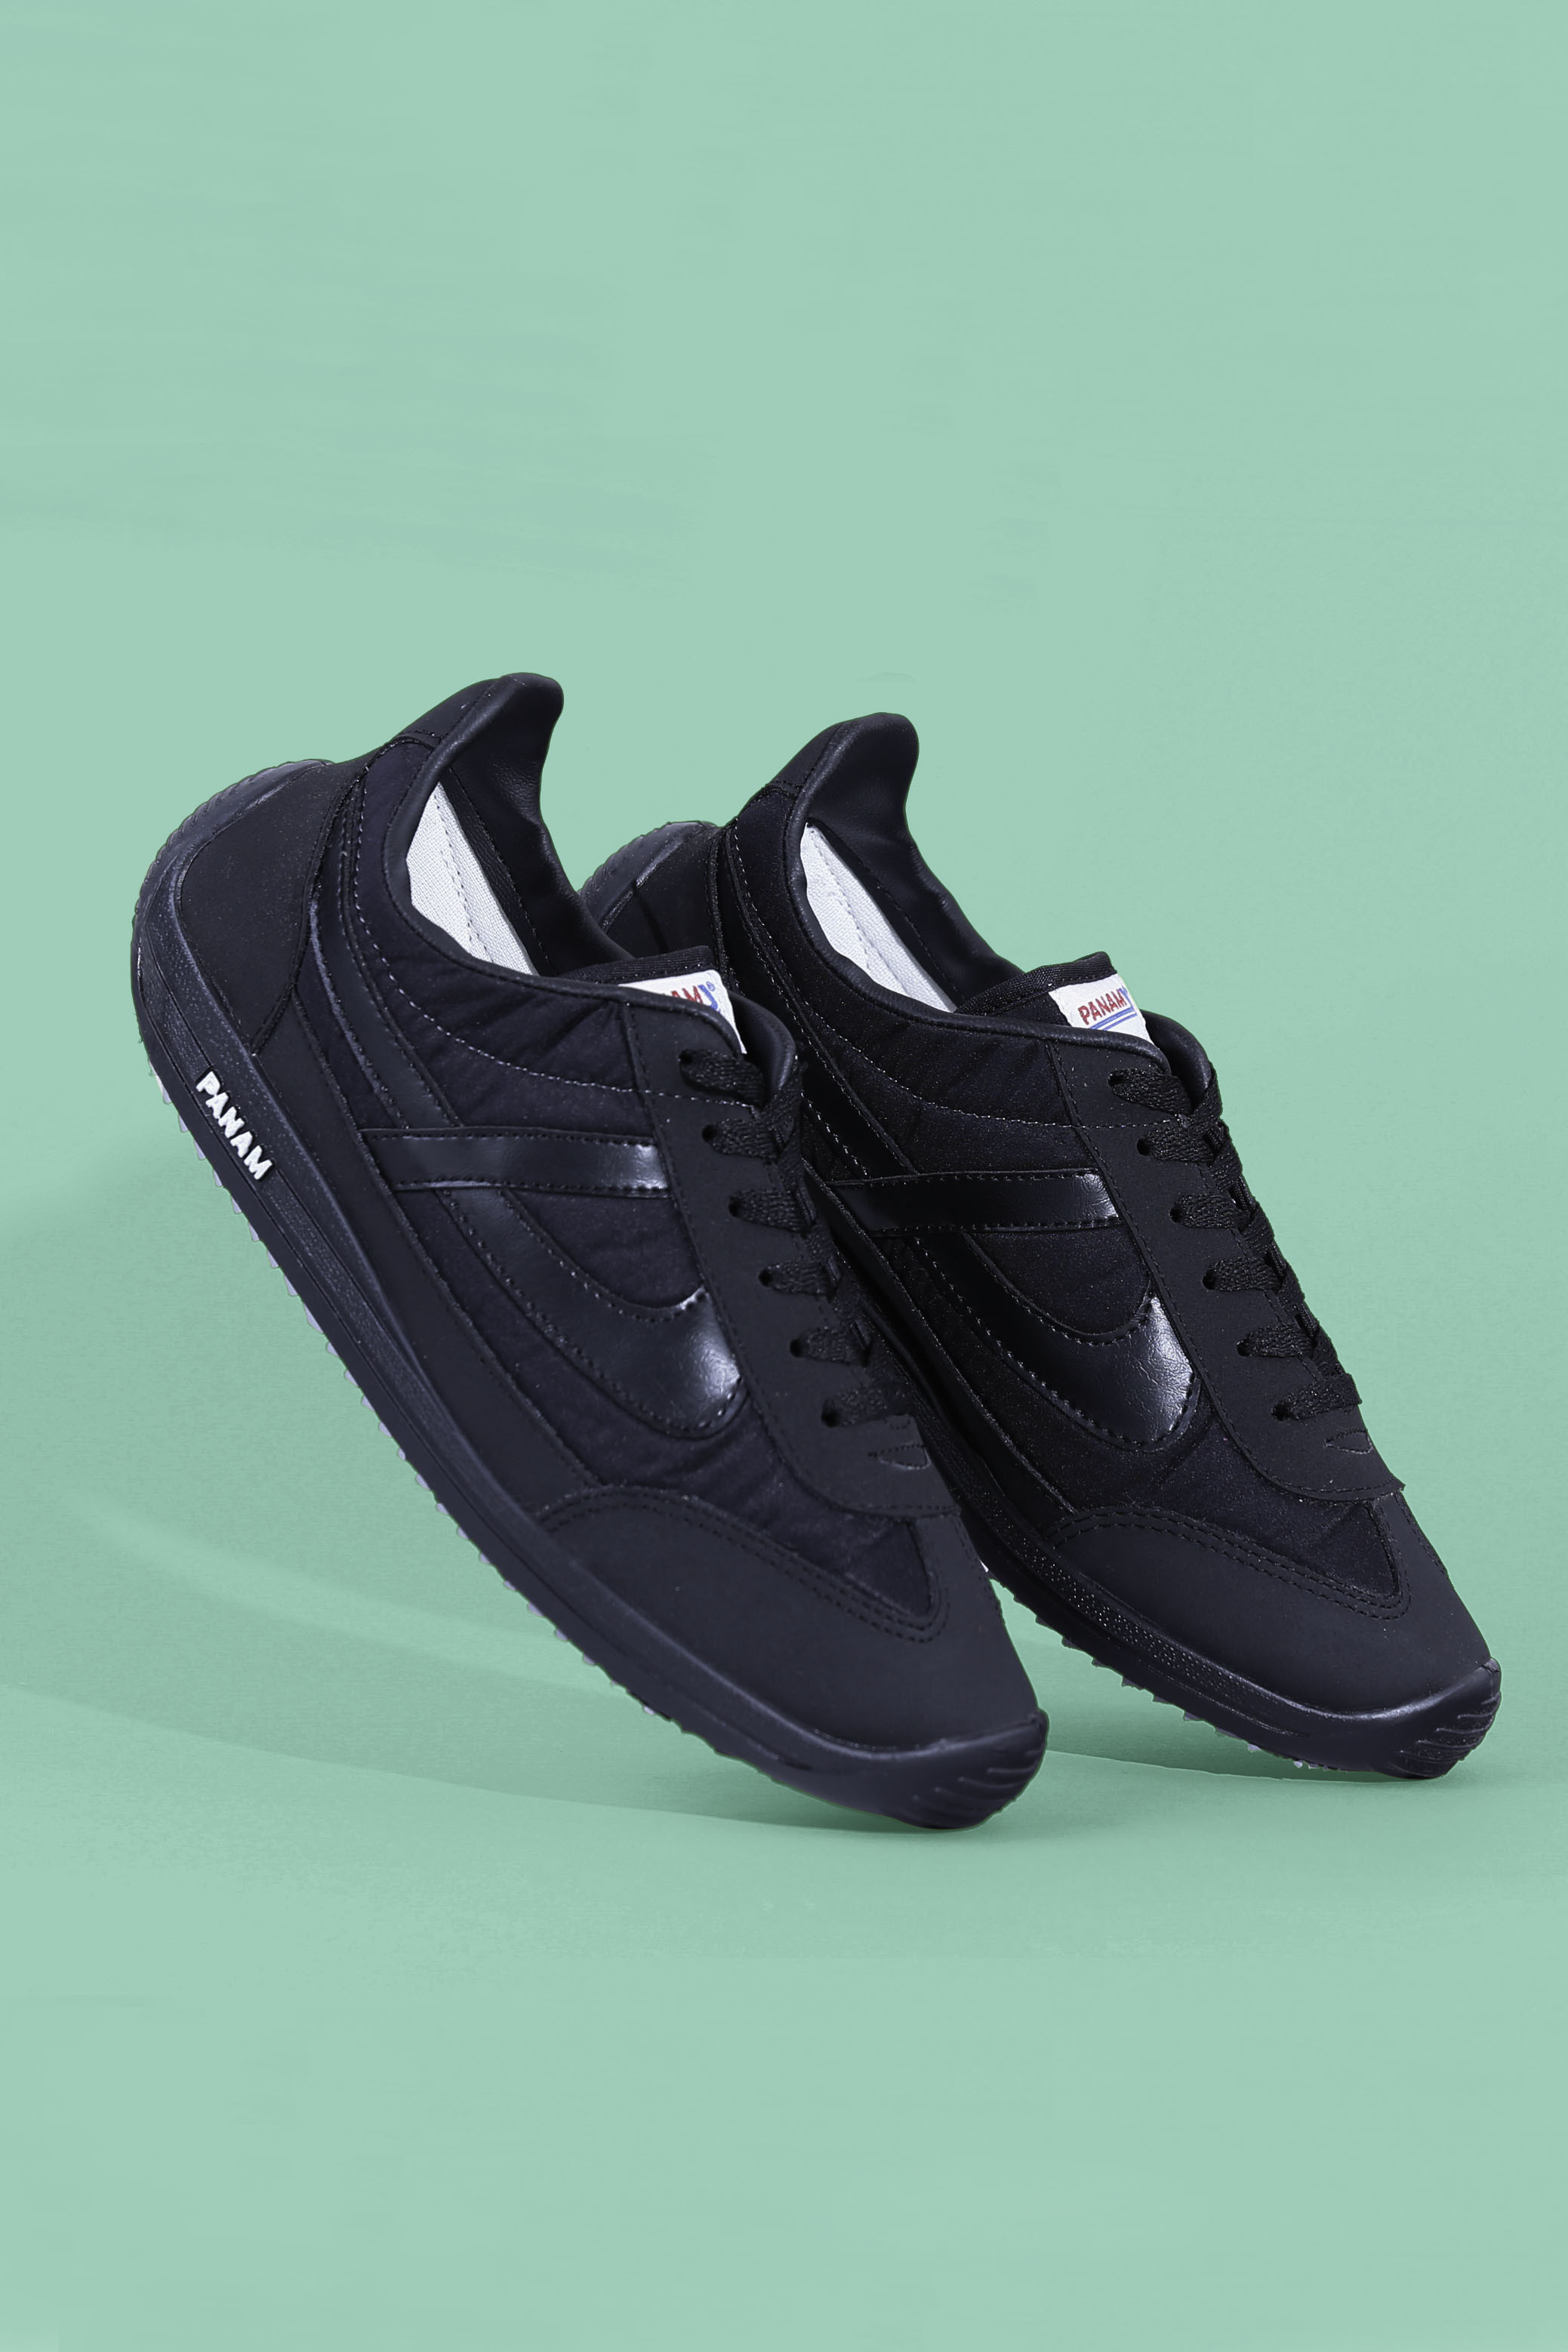 PANAM Classic Jogger Shoes (Black)